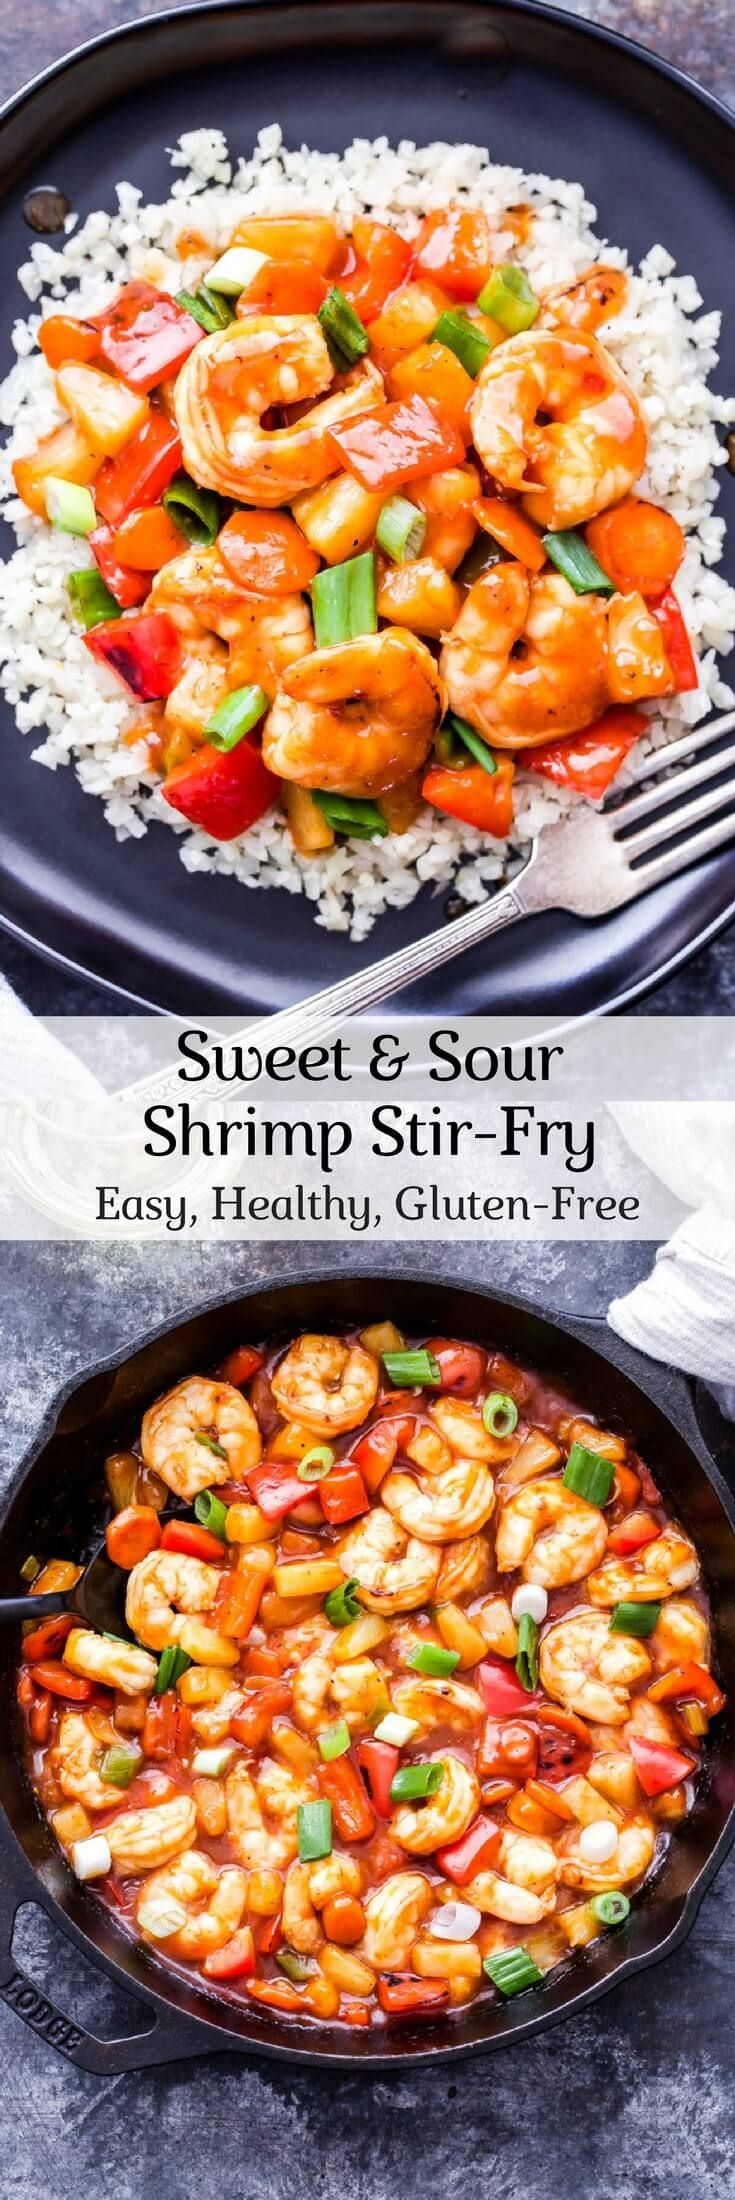 Sweet and Sour Shrimp Stir-Fry  Gluten-free and on the table in 30 minutes or less!  Frozen shrimp, carrots, bell pepper, scallions, garlic, pineapple  Sauce: ketchup, pineapple juice, apple cider vinegar, honey, soy sauce, ginger, cornstarch